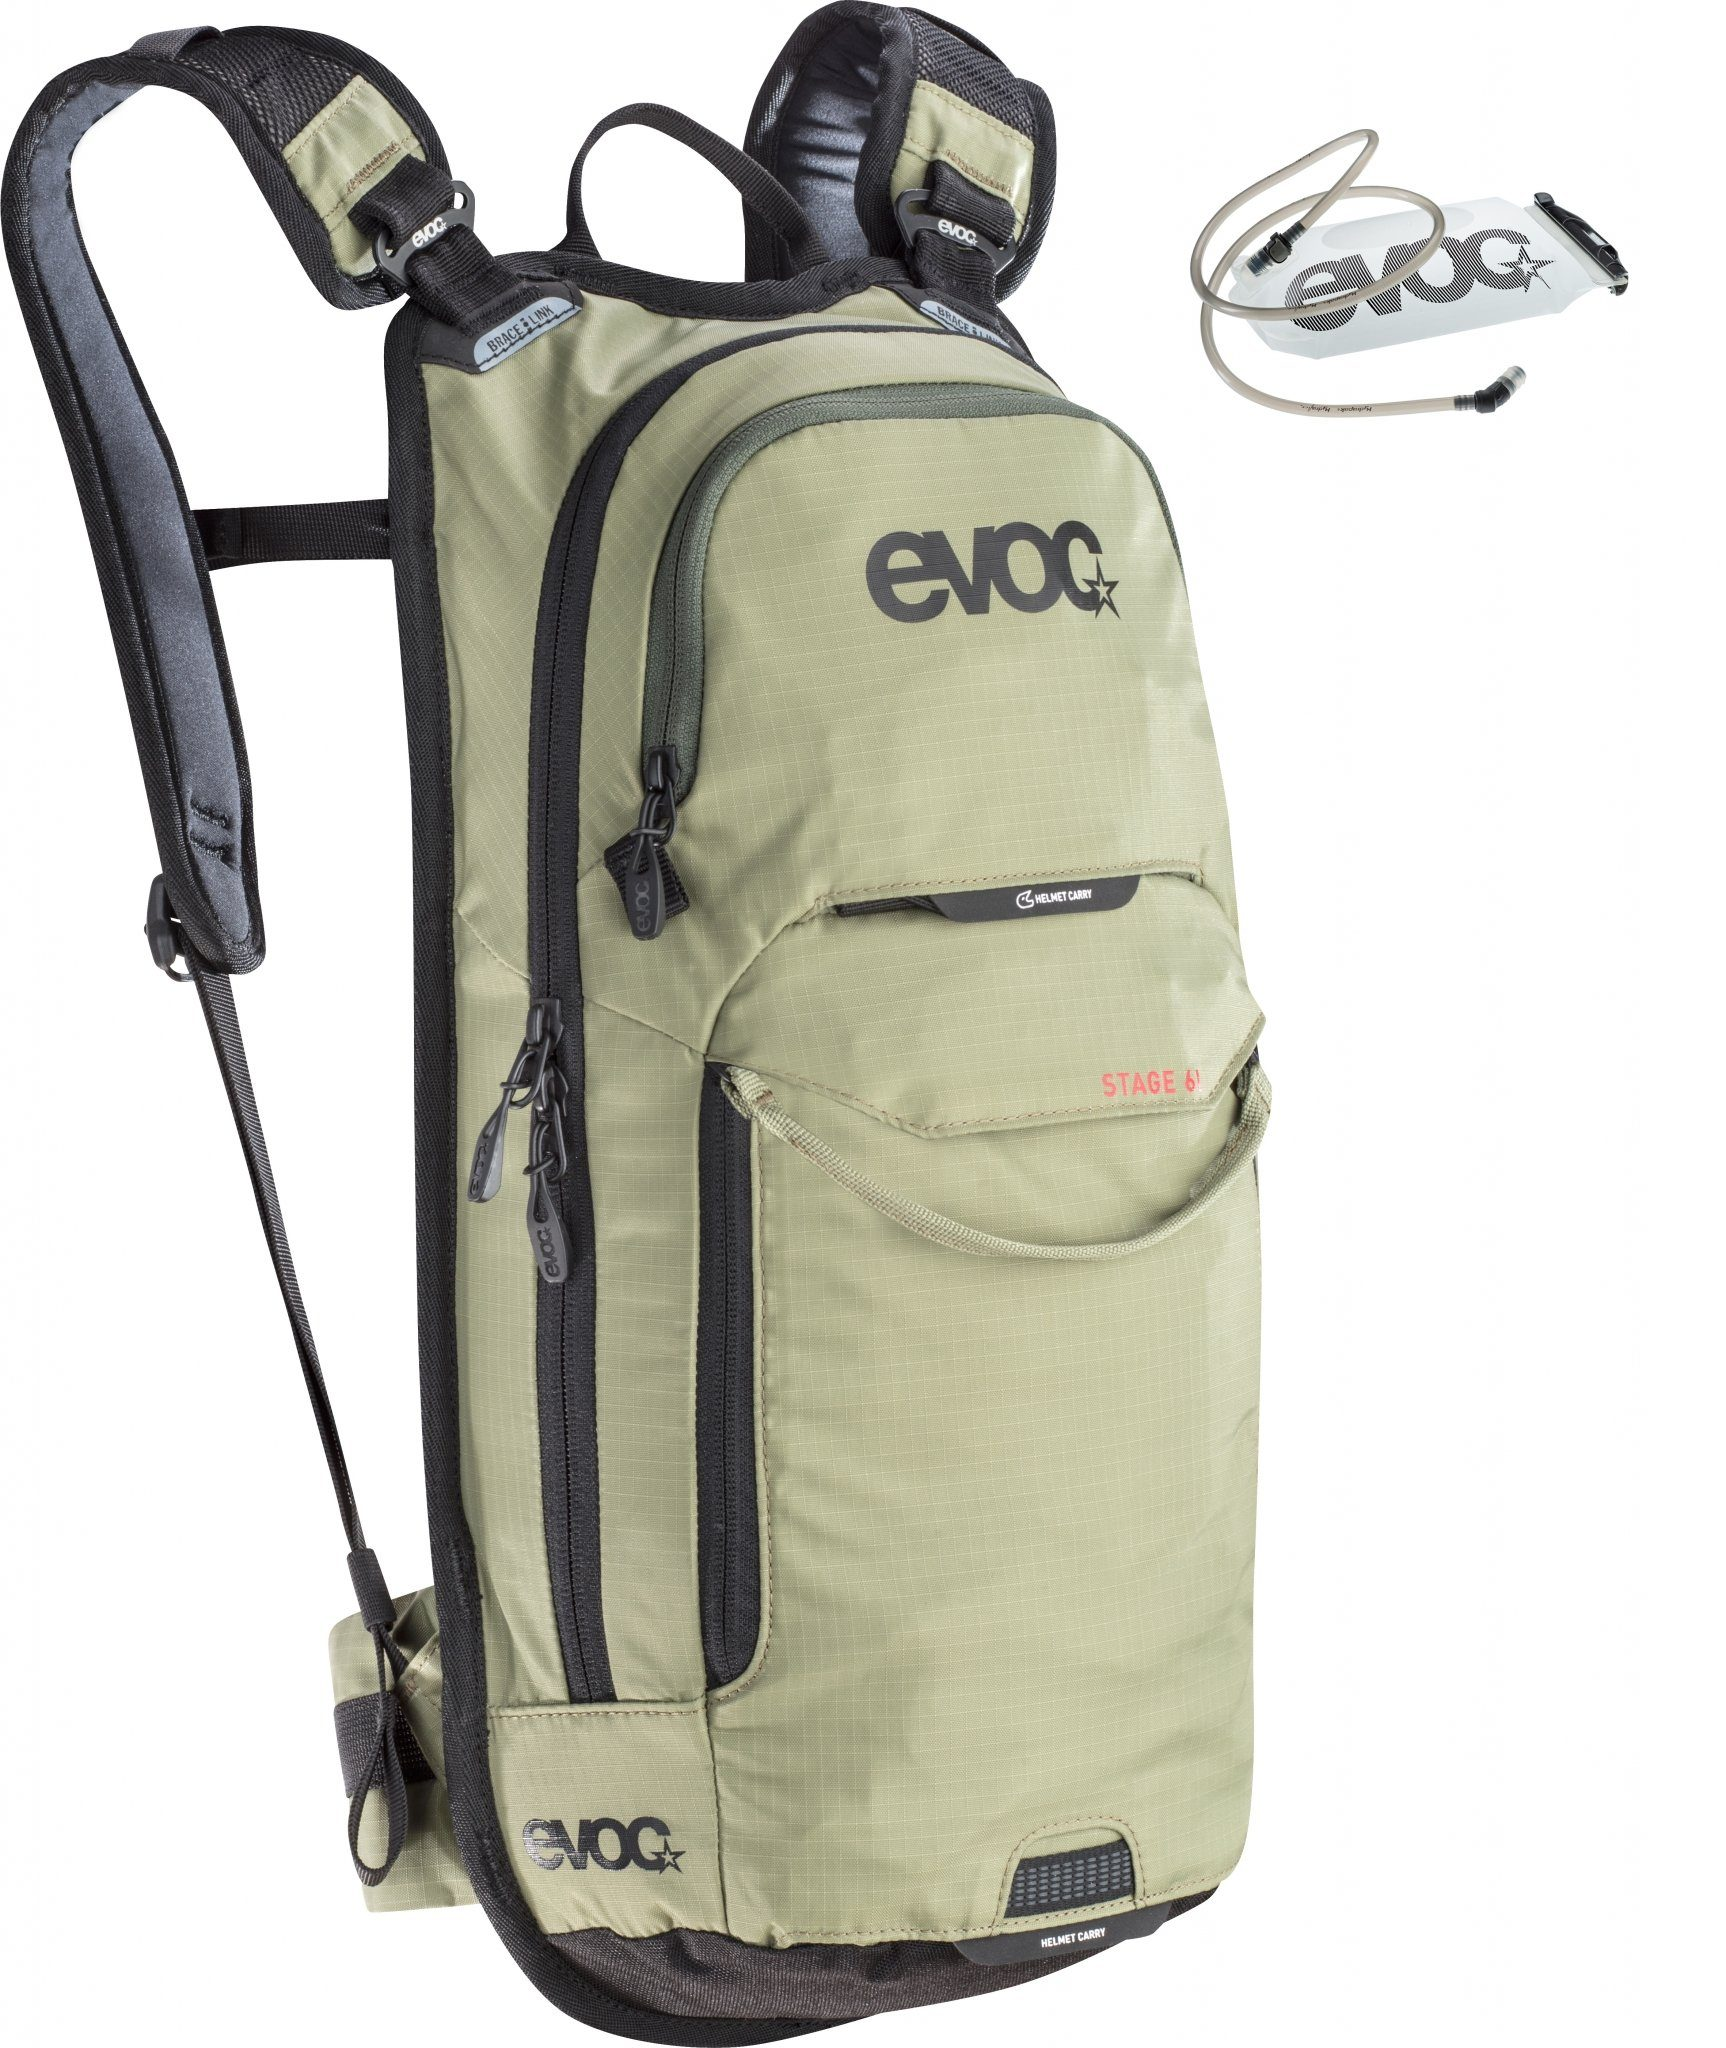 Evoc Rucksack »Stage Backpack 6 L + Hydration Bladder 2 L«